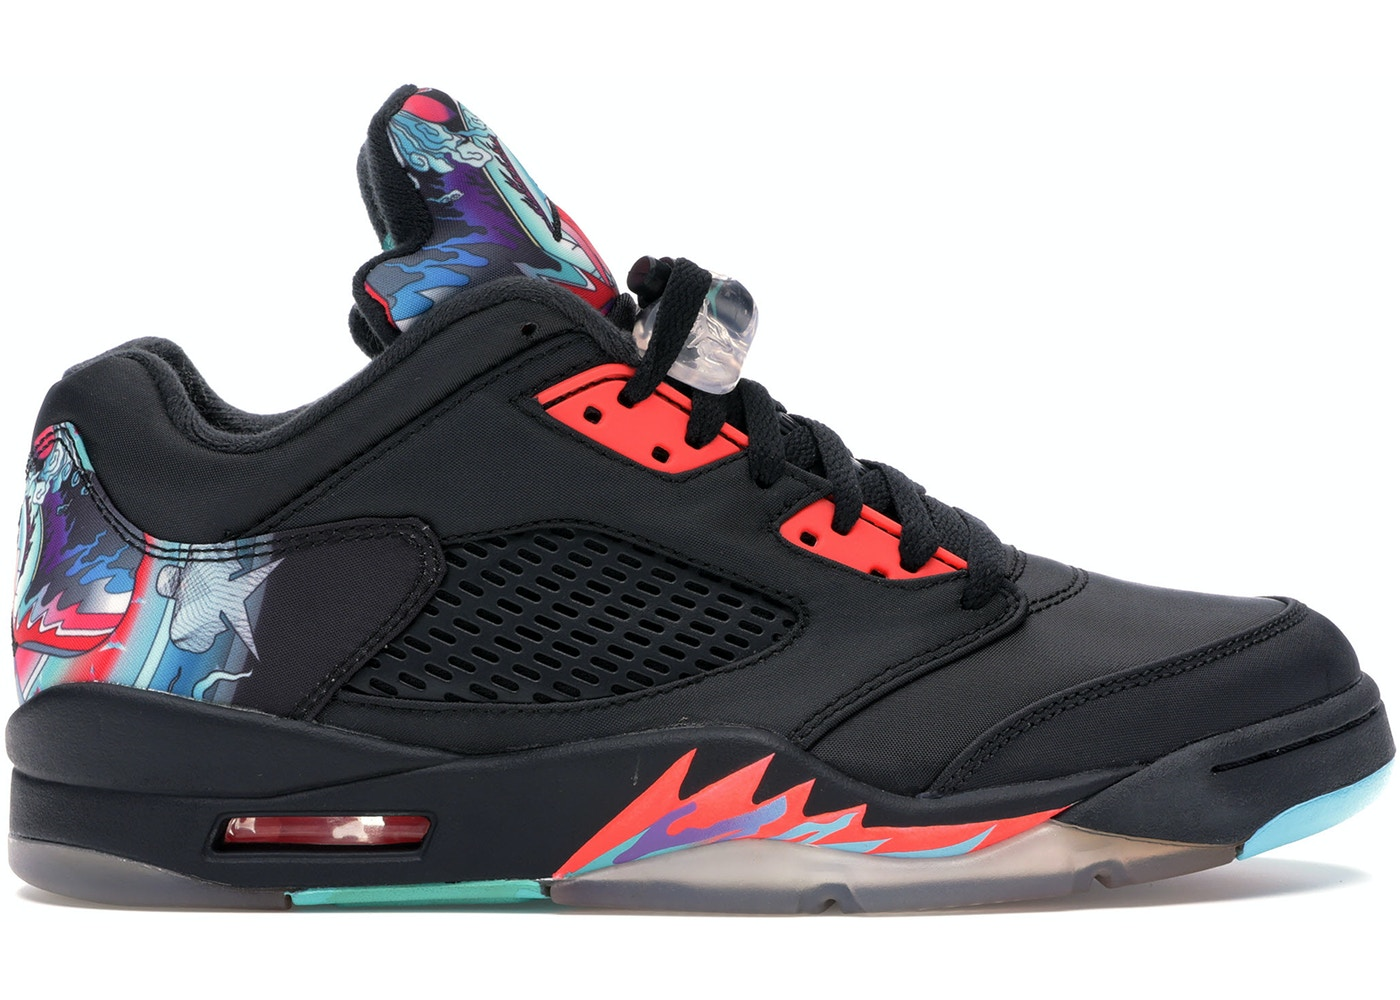 c3b020097eaaae Jordan 5 Retro Low Chinese New Year - 840475-060